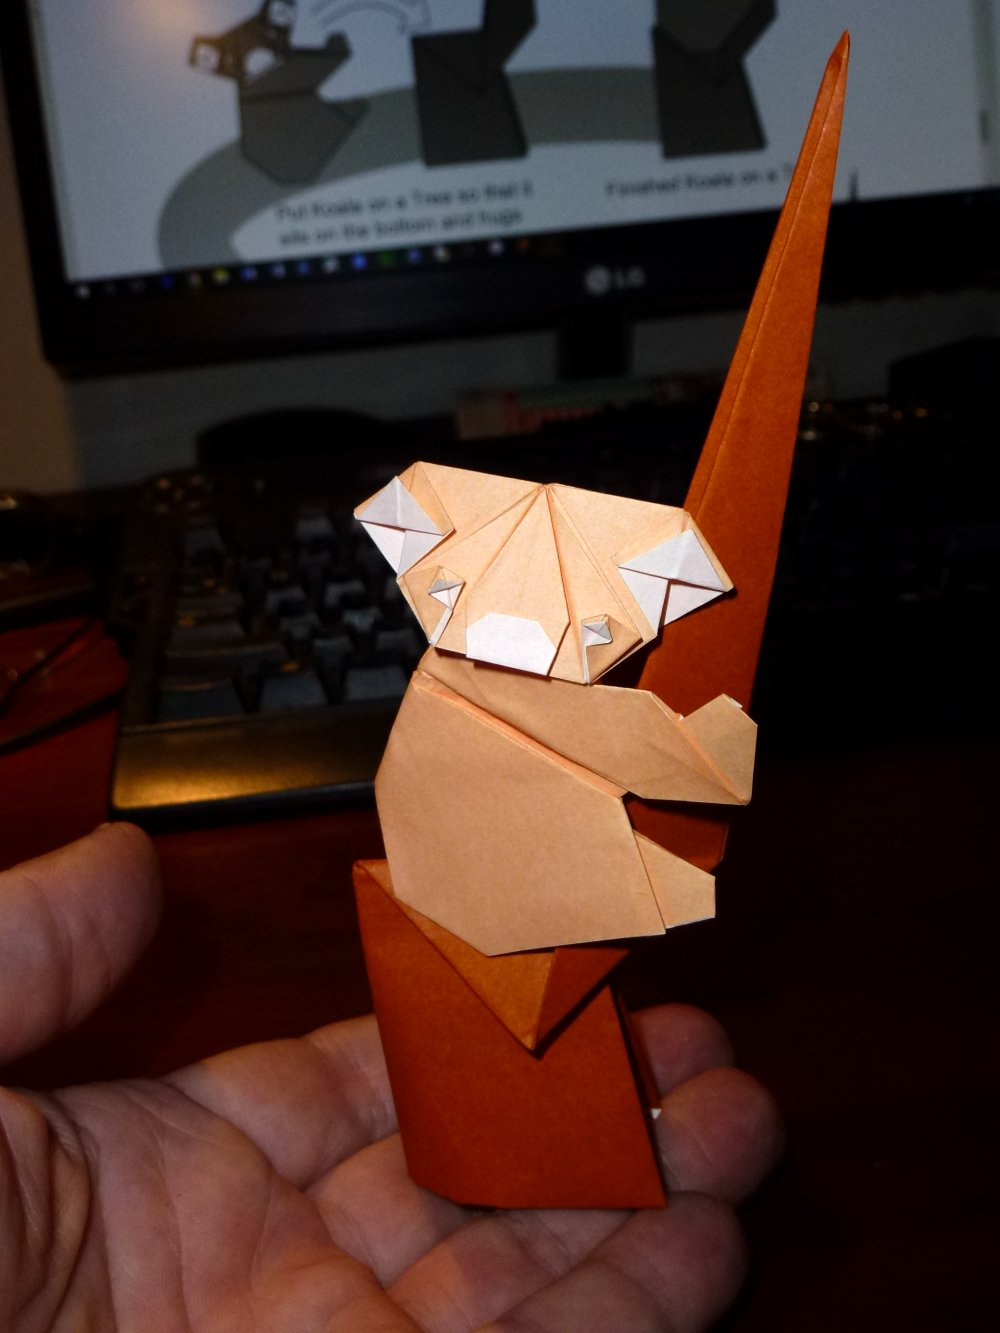 Origami Koalas - Page 1 of 2 | Gilad's Origami Page | 1333x1000